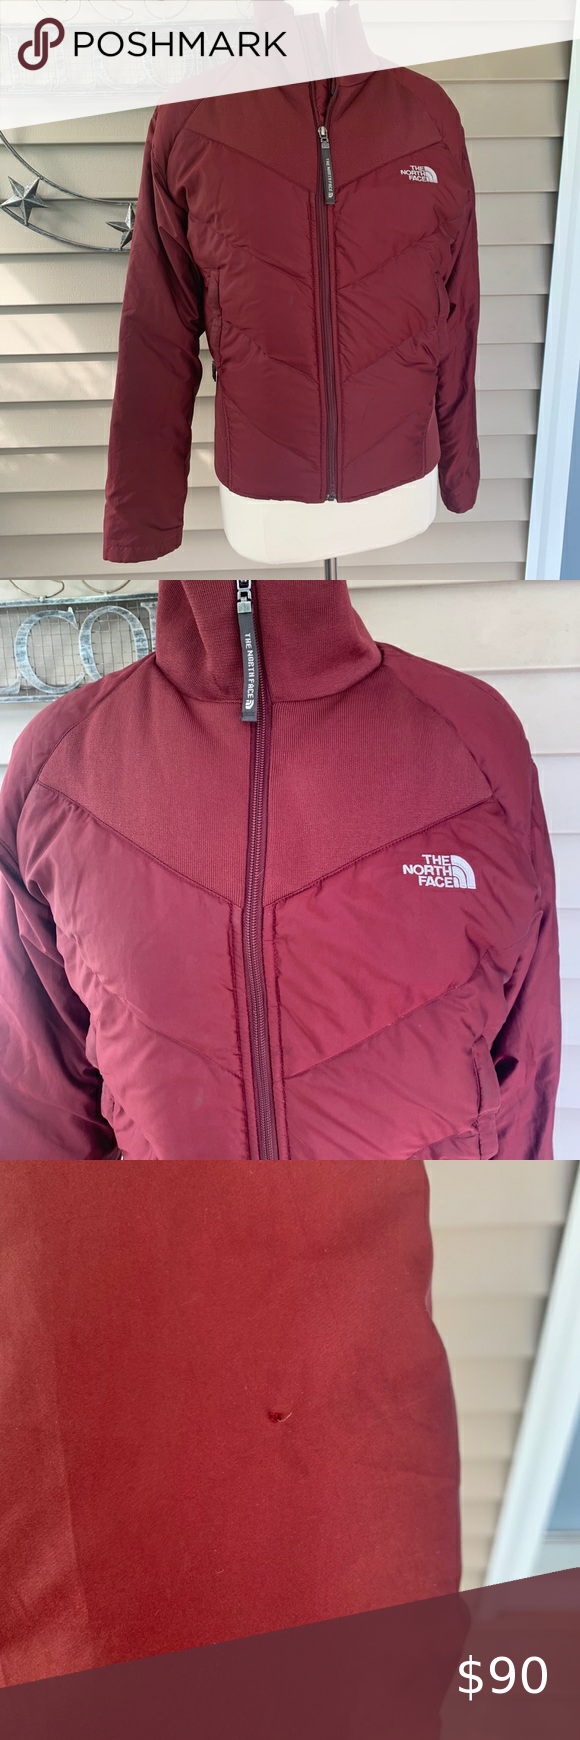 North Face Ski Puffer Jacket Great Used Condition Maroon In Color Minor Wear Marks One Tee Womens Puffer Vest Winter Jacket North Face Pink North Face Jacket [ 1740 x 580 Pixel ]